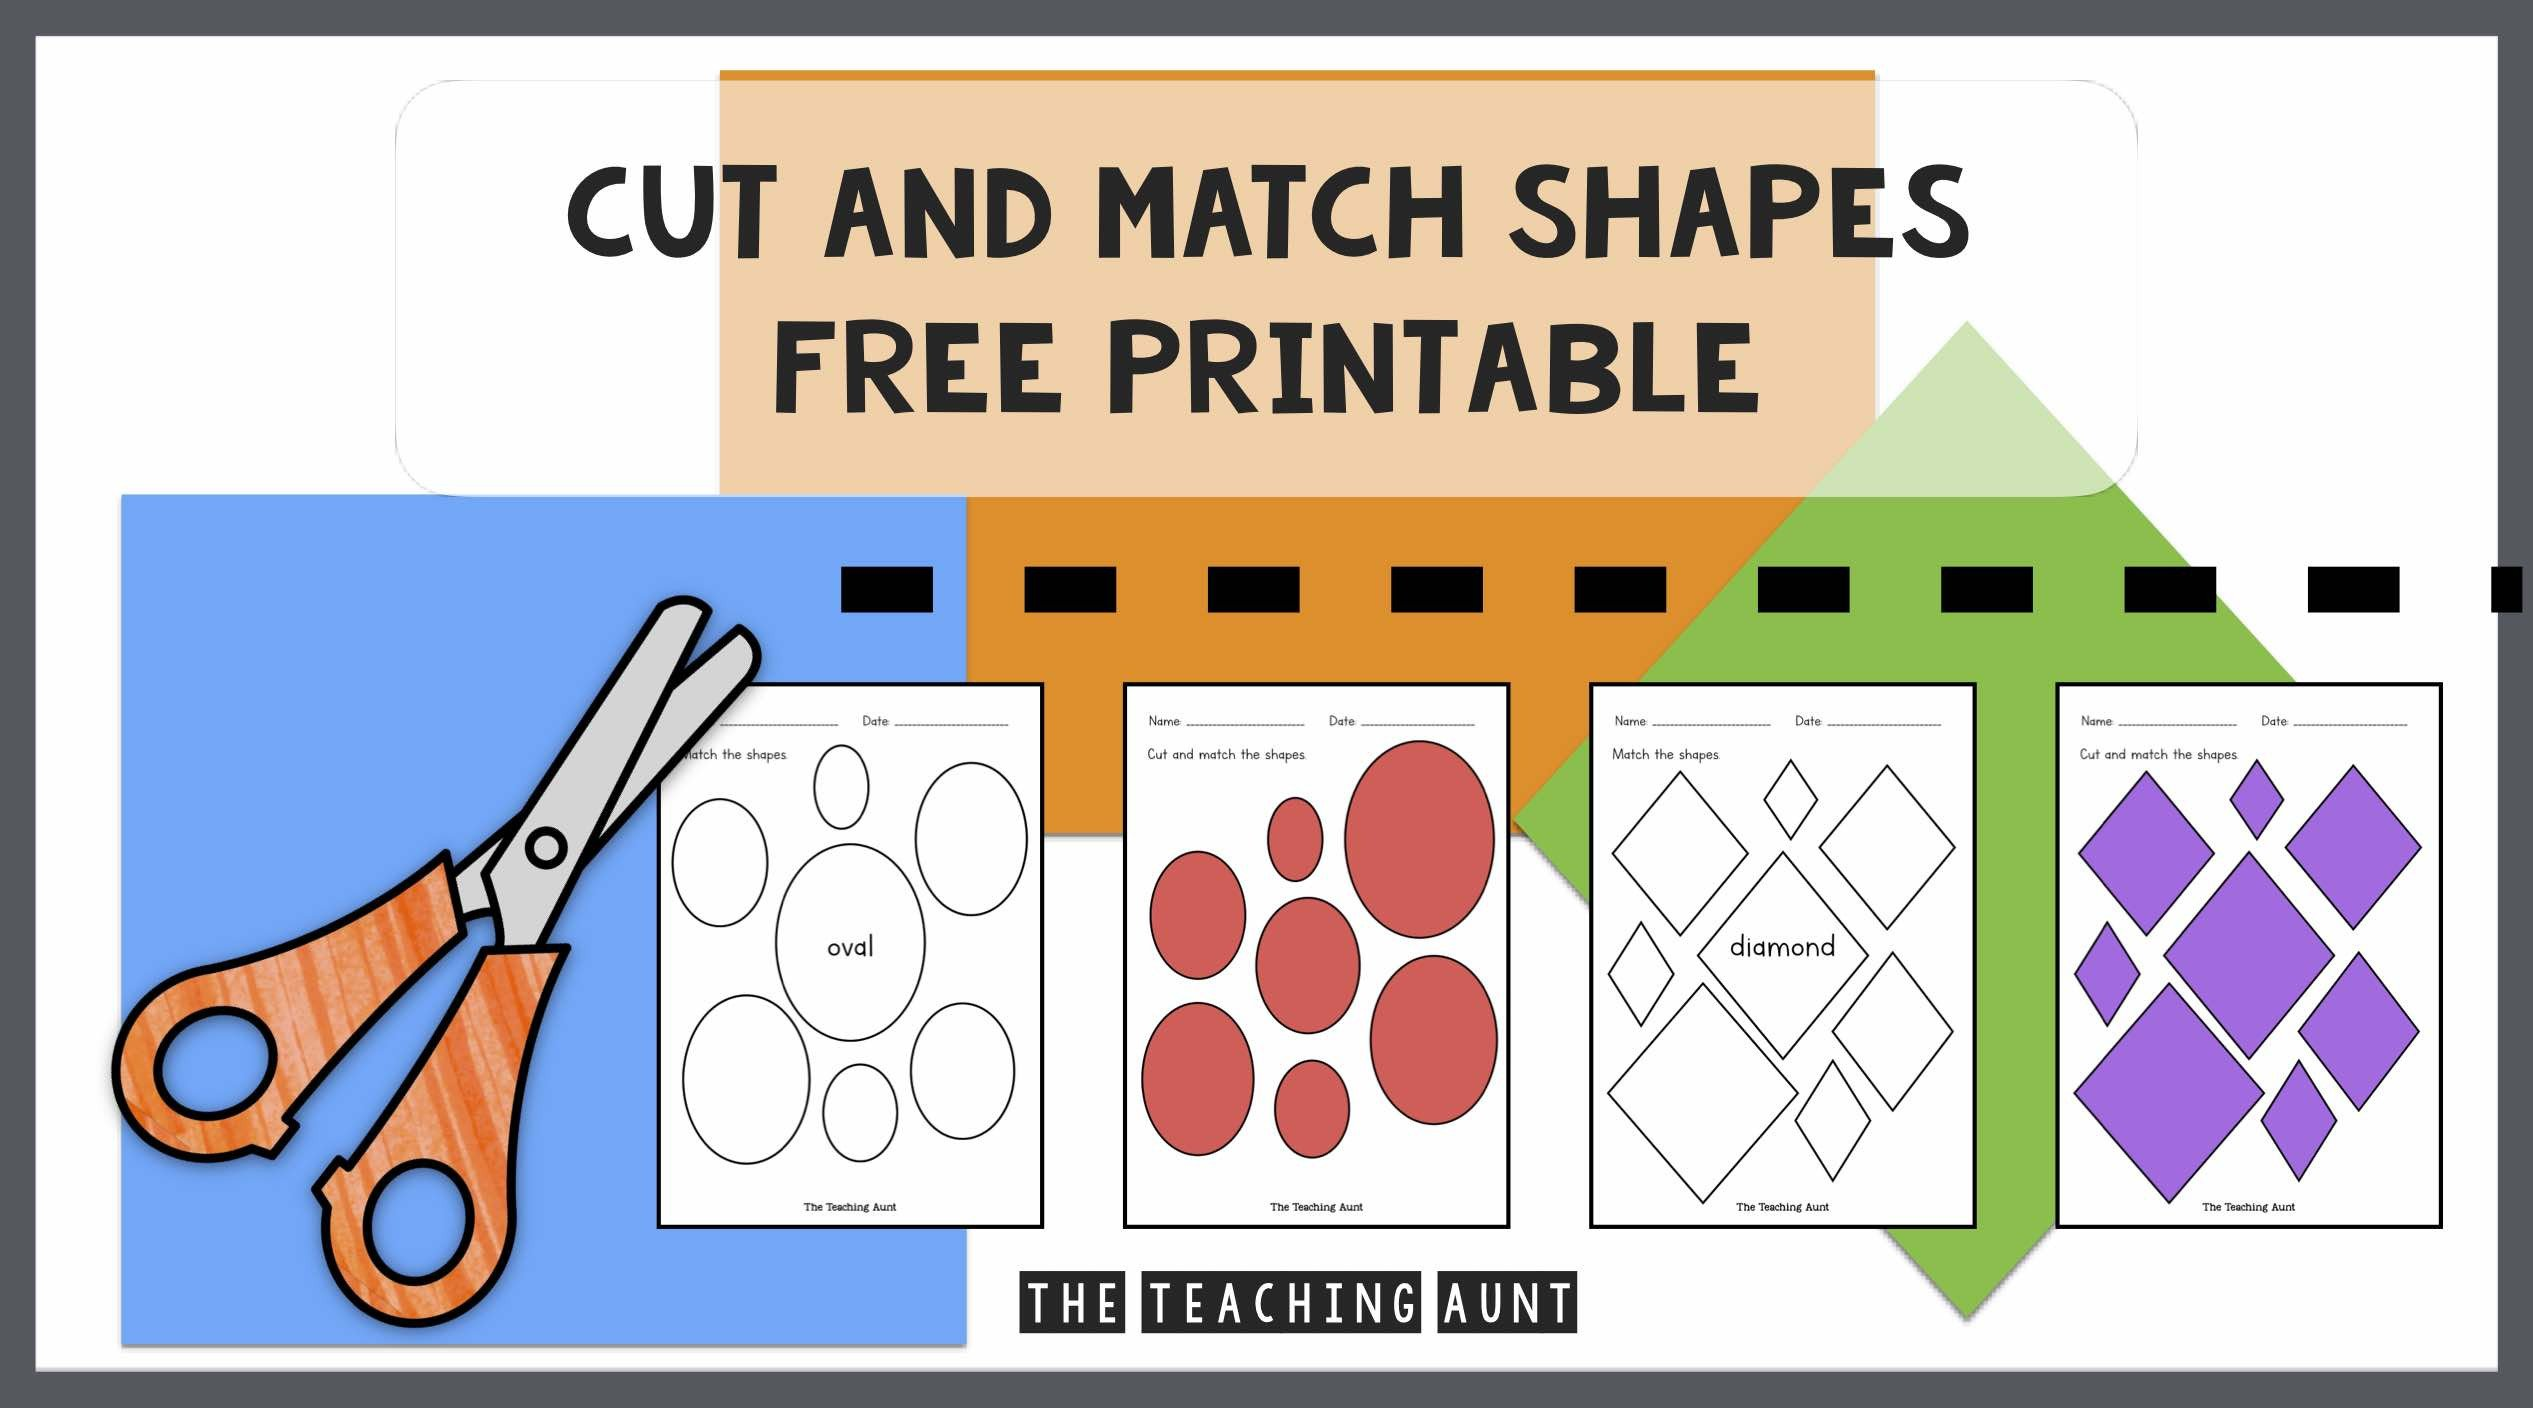 Kindergarten Shapes Worksheets Free Cut and Match Shapes Worksheets the Teaching Aunt